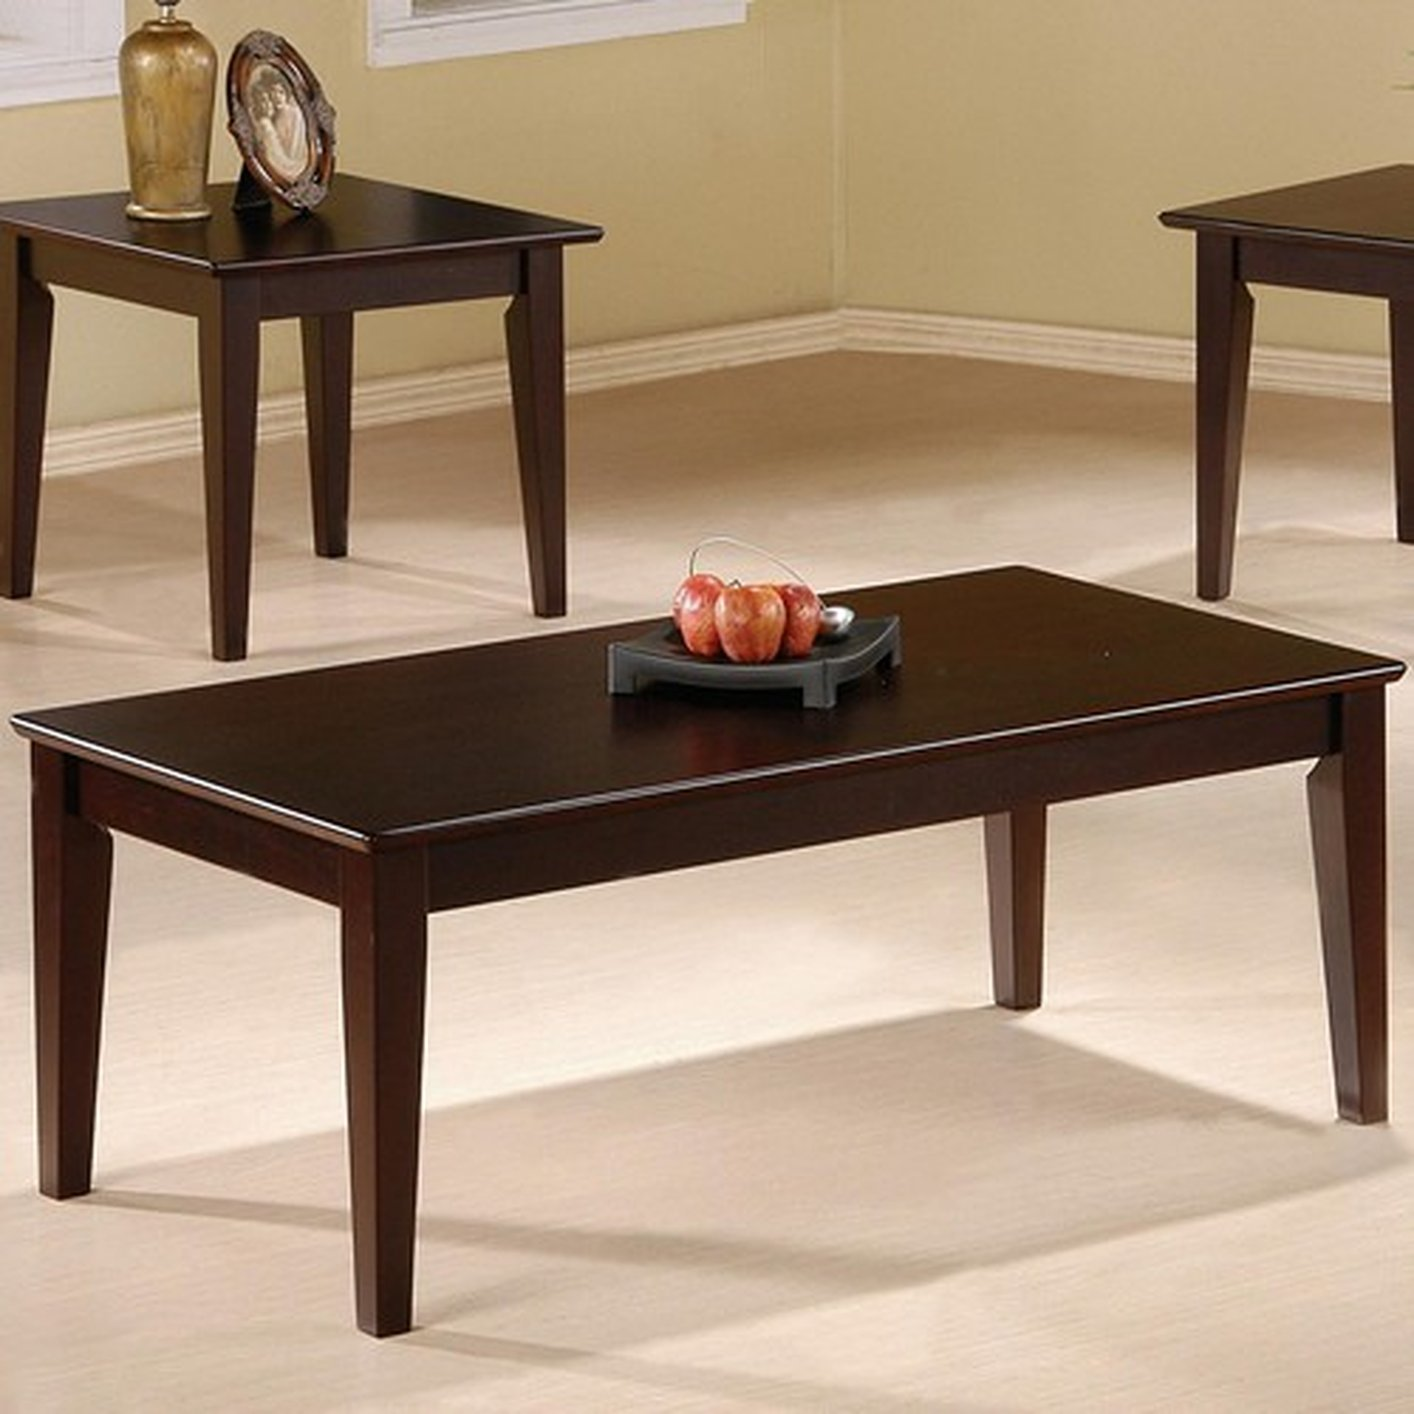 Coaster Rupard 5880 Brown Wood Coffee Table Set Steal A Sofa Furniture Outlet Los Angeles Ca